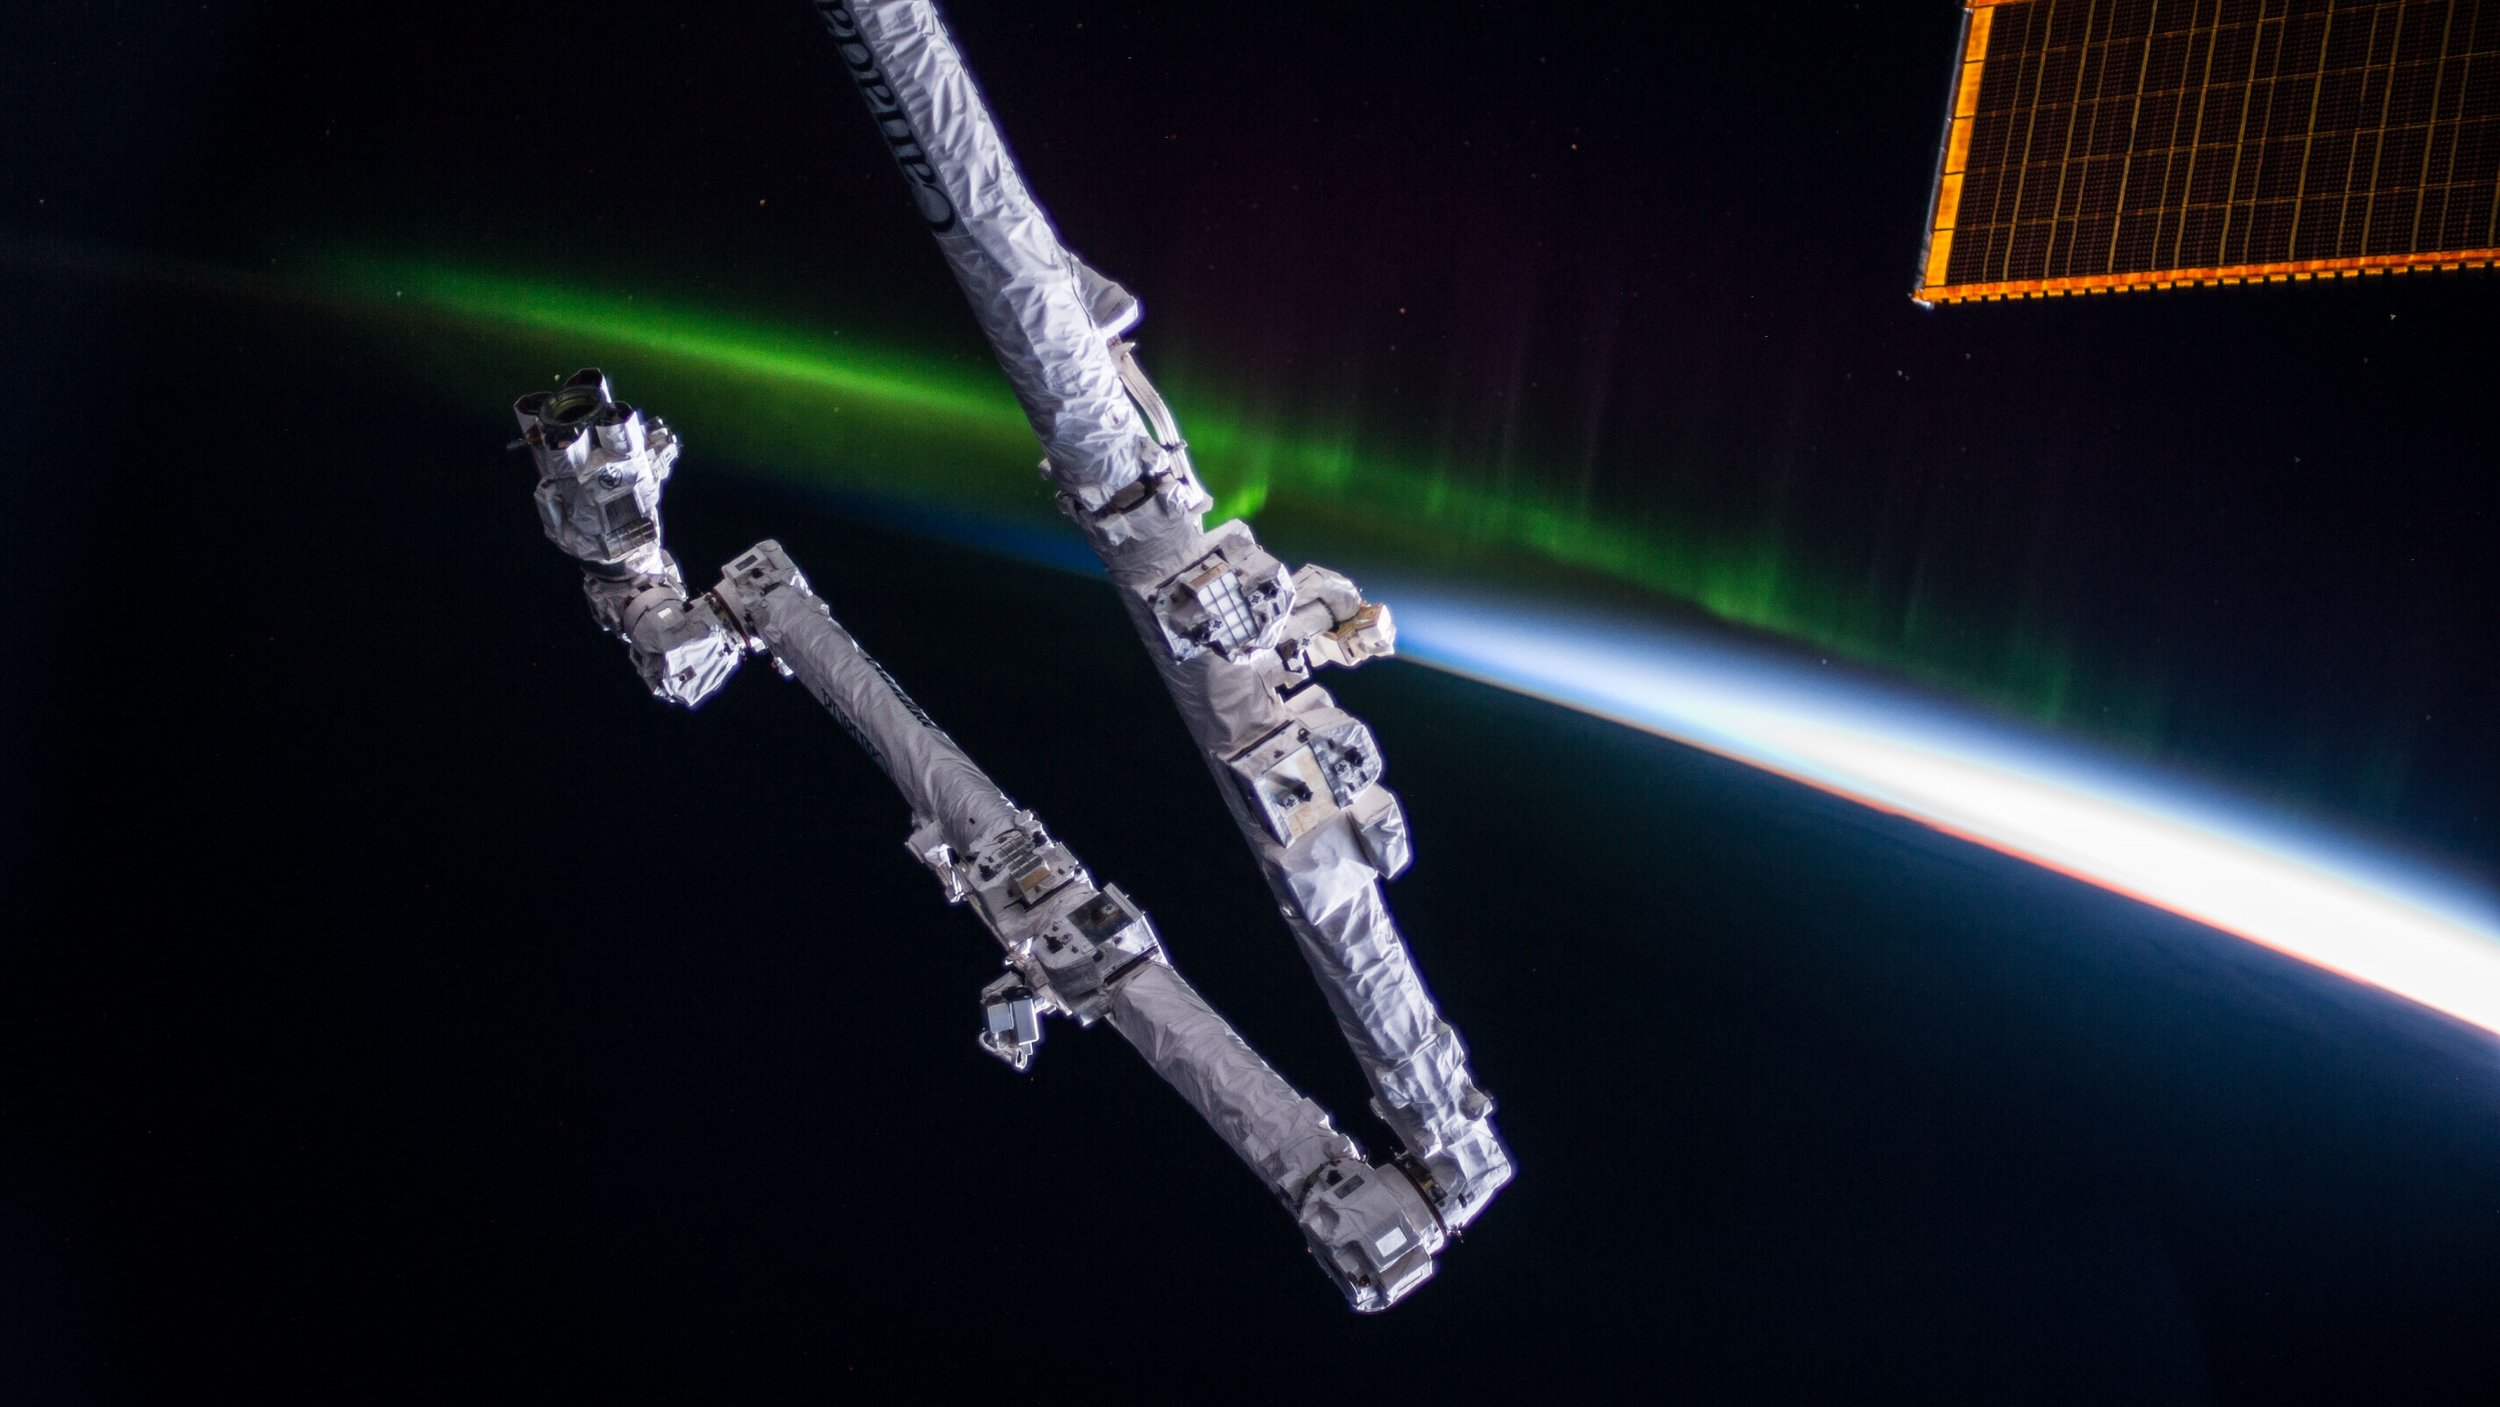 Canadarm2, the International Space Station's primary robotic arm, is seen attached to the outpost with an aurora in the background. Credit: NASA